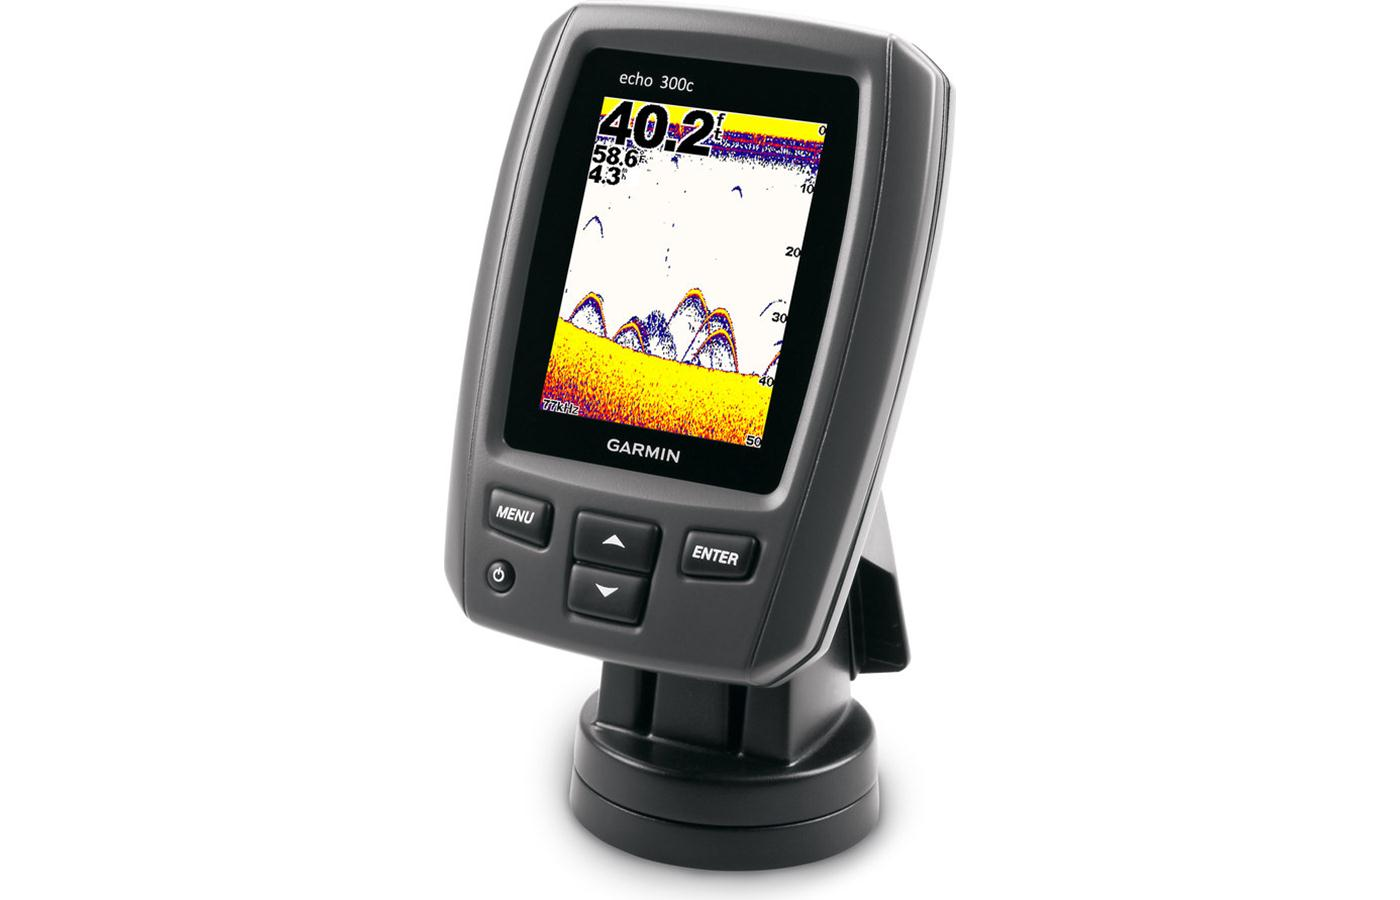 Garmin Echo 300c Fishfinder with 3.5